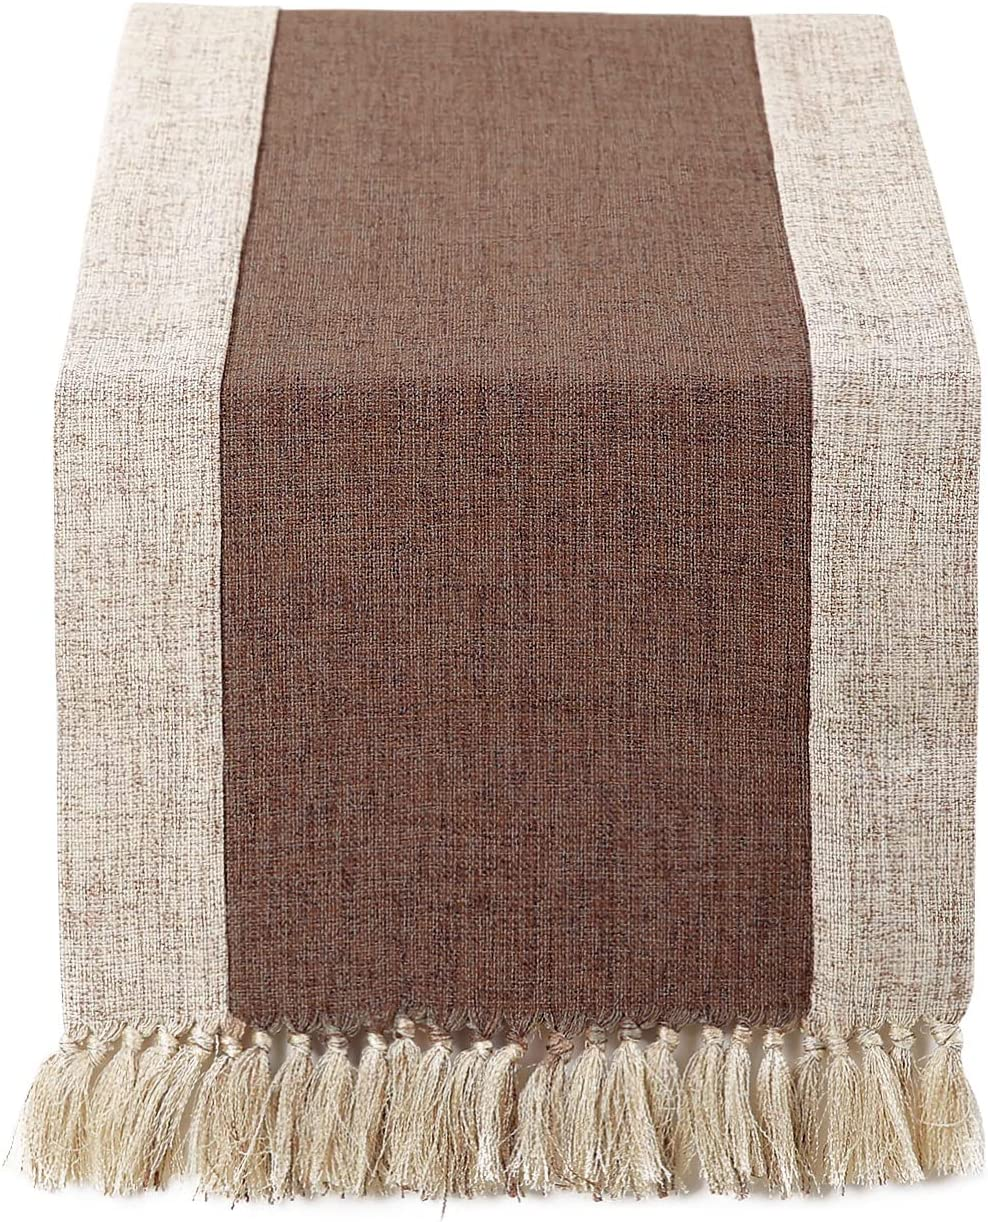 Chassic 15 x 90 inch Rustic Burlap Woven Boho Table Runners Linen with Handmade Fringe, Village Farmhouse Dining Room Dresser Decor - Brown